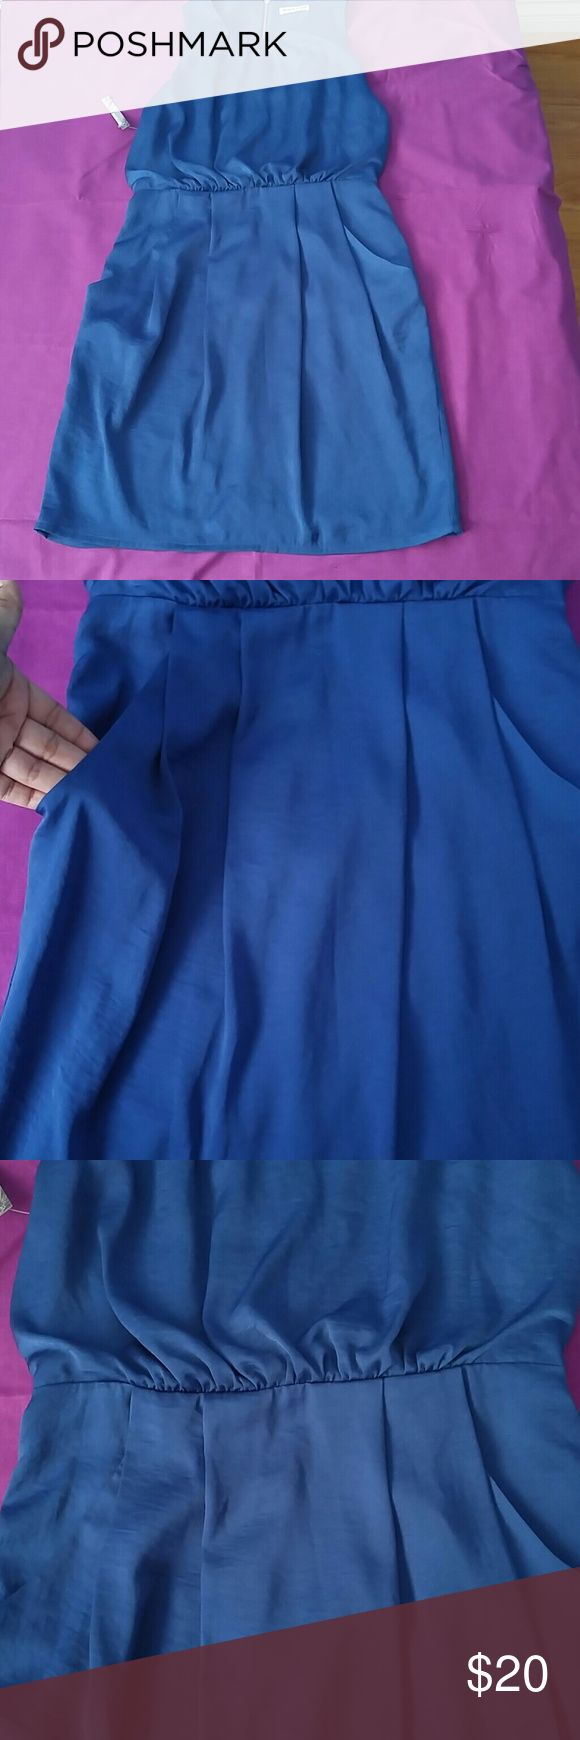 Whistles dress This gorgeous navy blue dress is simply beautiful and a great dress for any event. It shows off your assets while keeping it classy. 100% polyester side pockets and above the knee length. Whistles Dresses Strapless